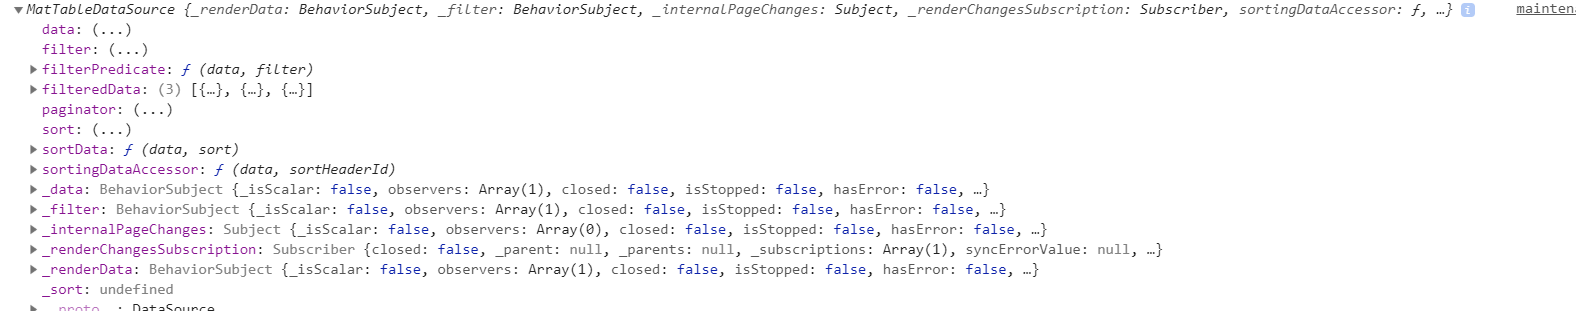 Table] MatTableDataSource does not properly sort null/undefined